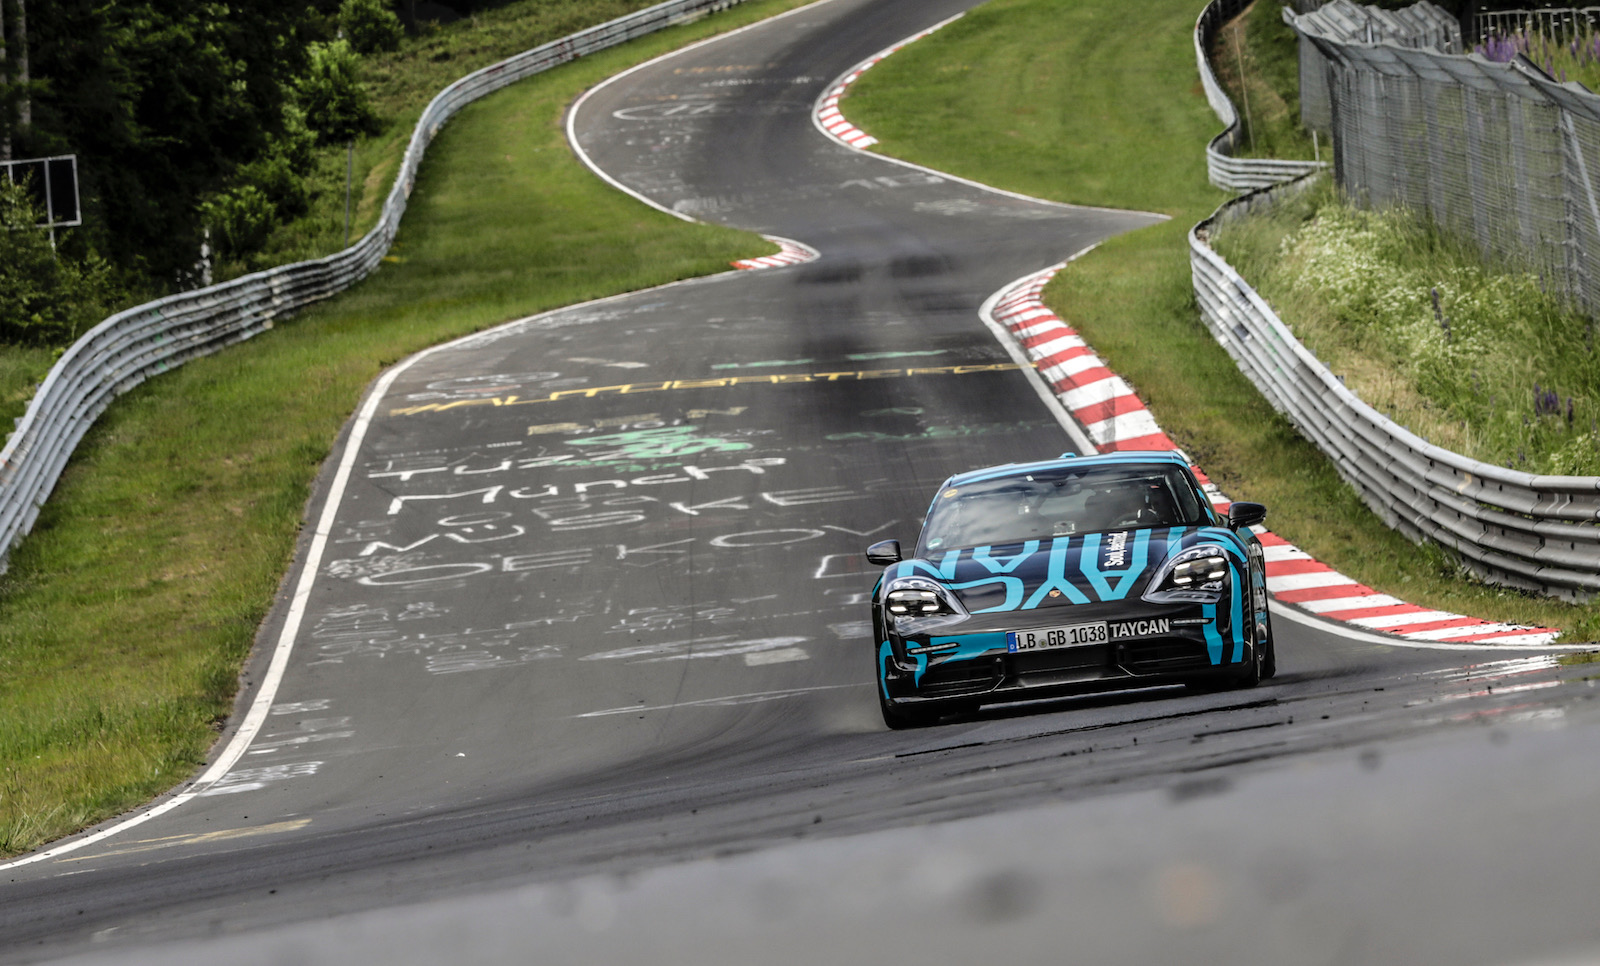 Porsche Taycan sets Nurburgring lap record (video